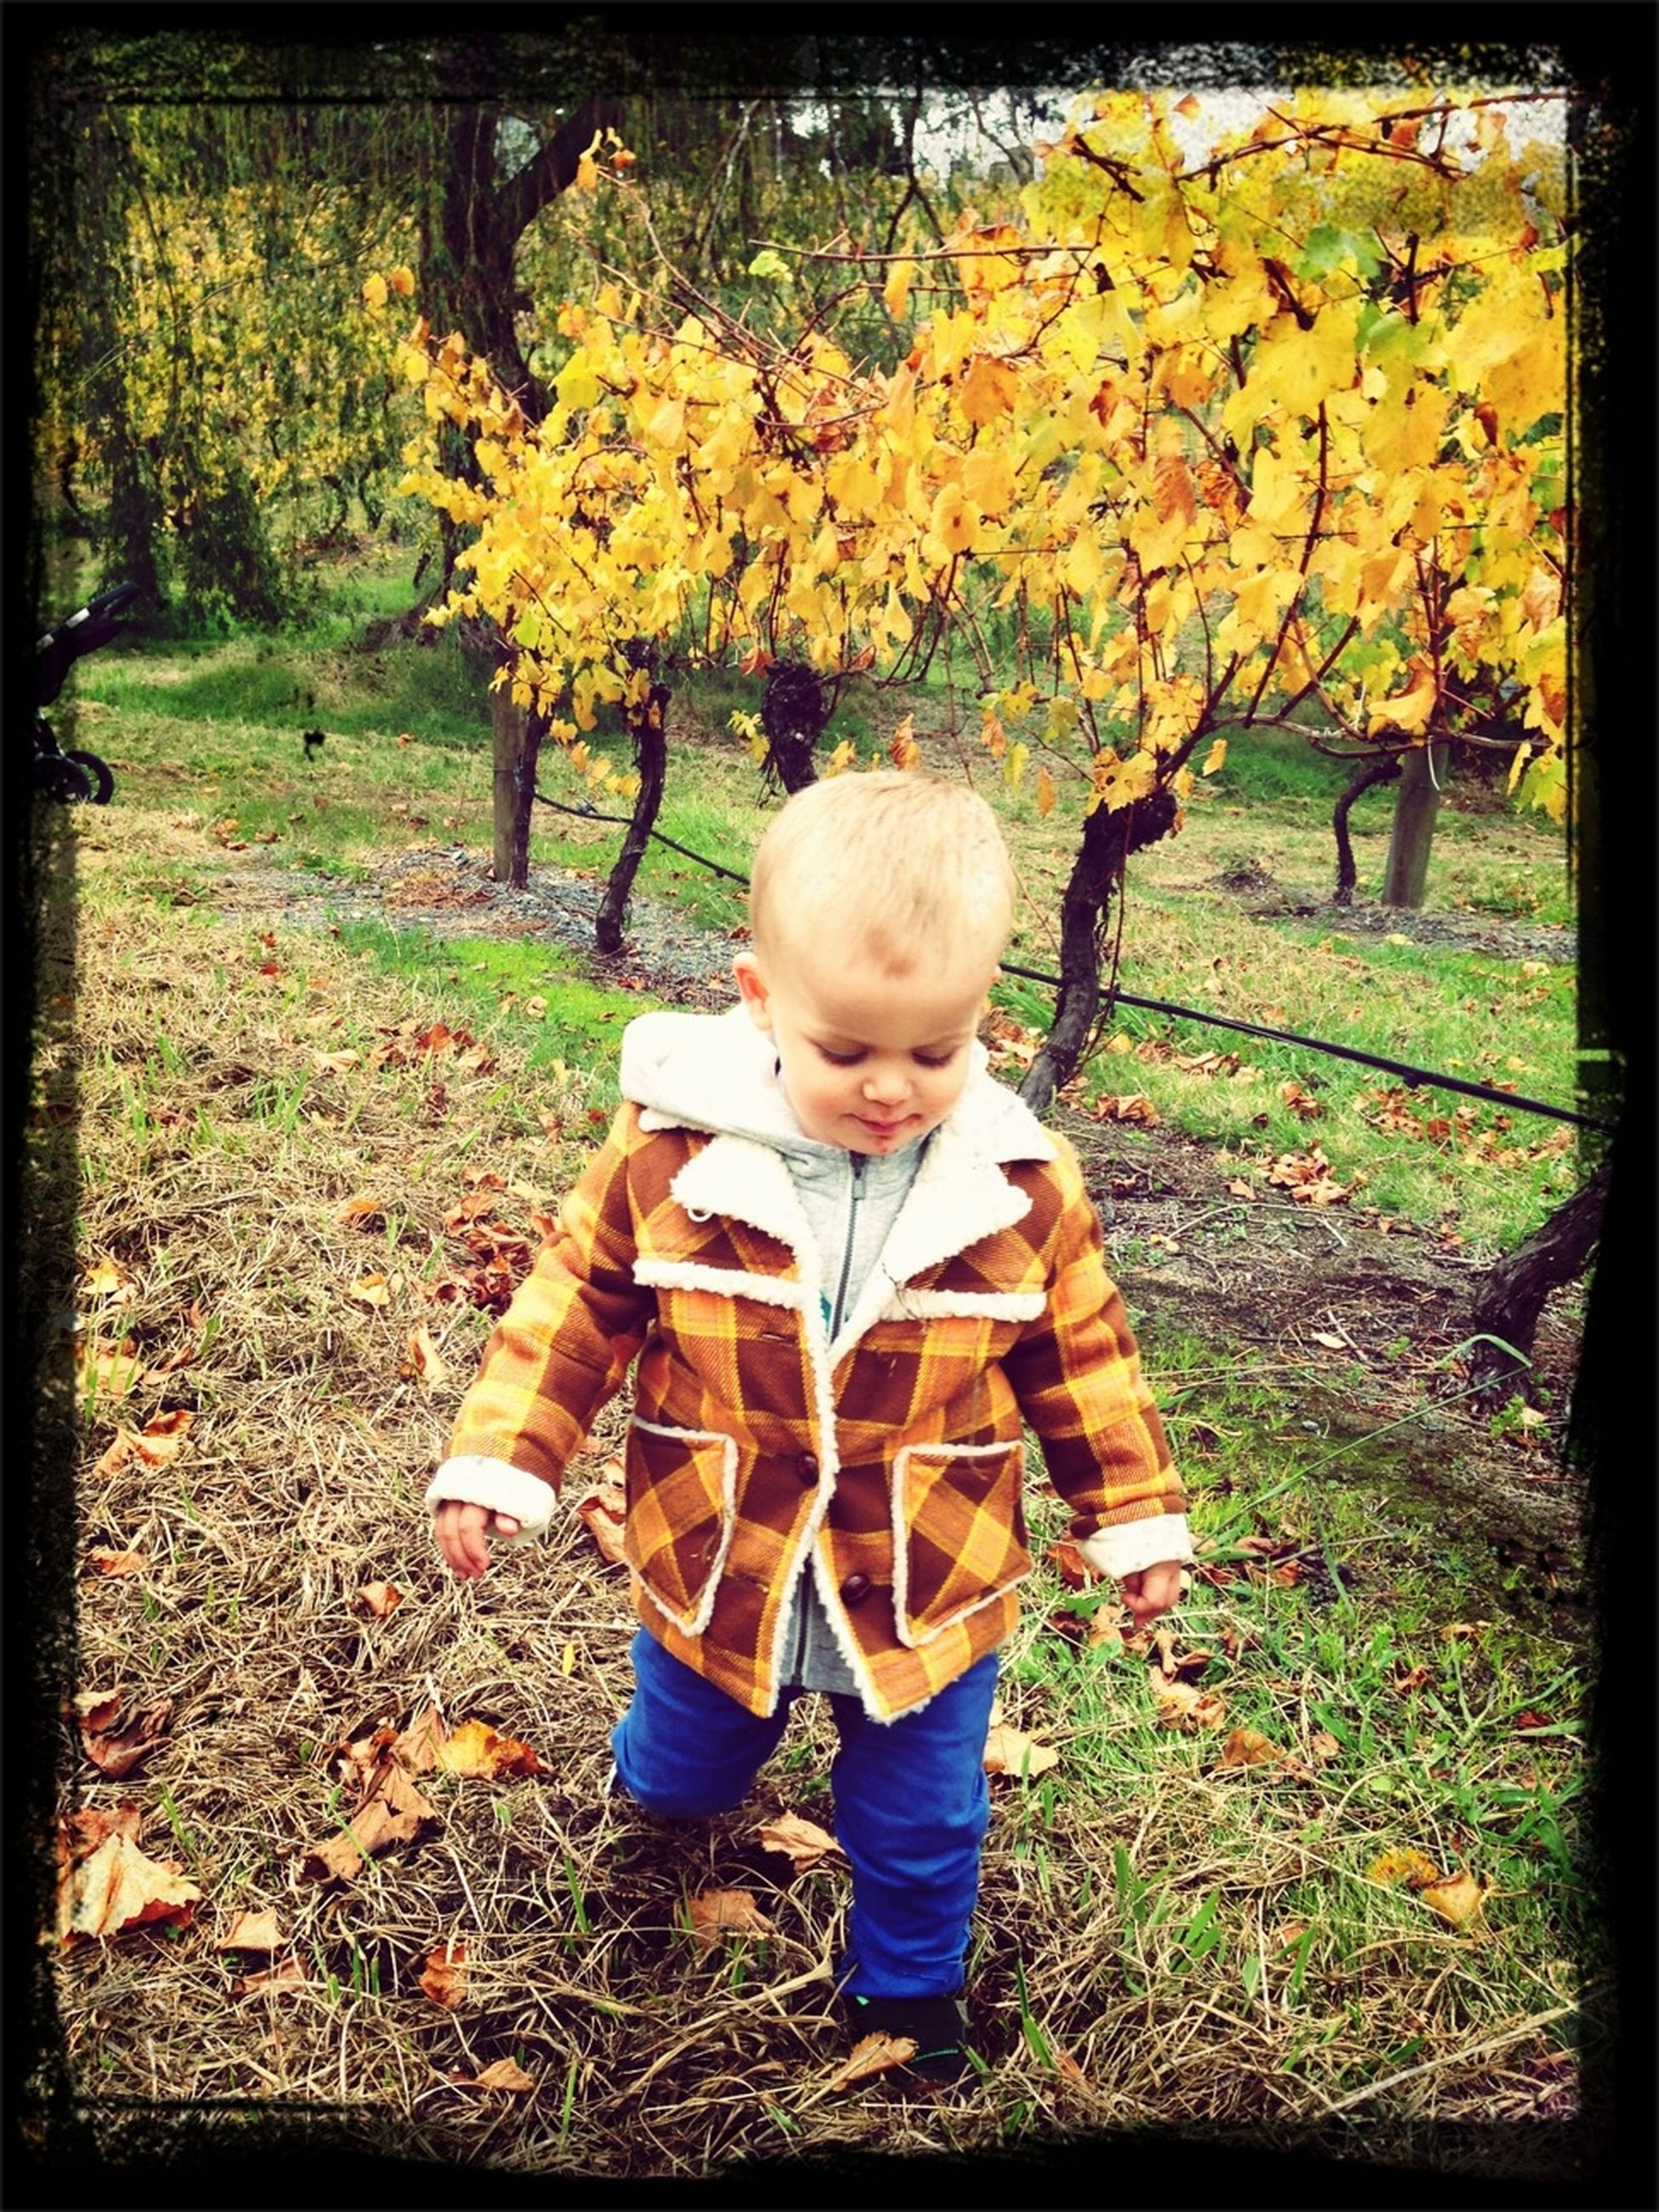 childhood, elementary age, lifestyles, leisure activity, girls, boys, casual clothing, tree, transfer print, park - man made space, person, innocence, field, autumn, growth, rear view, cute